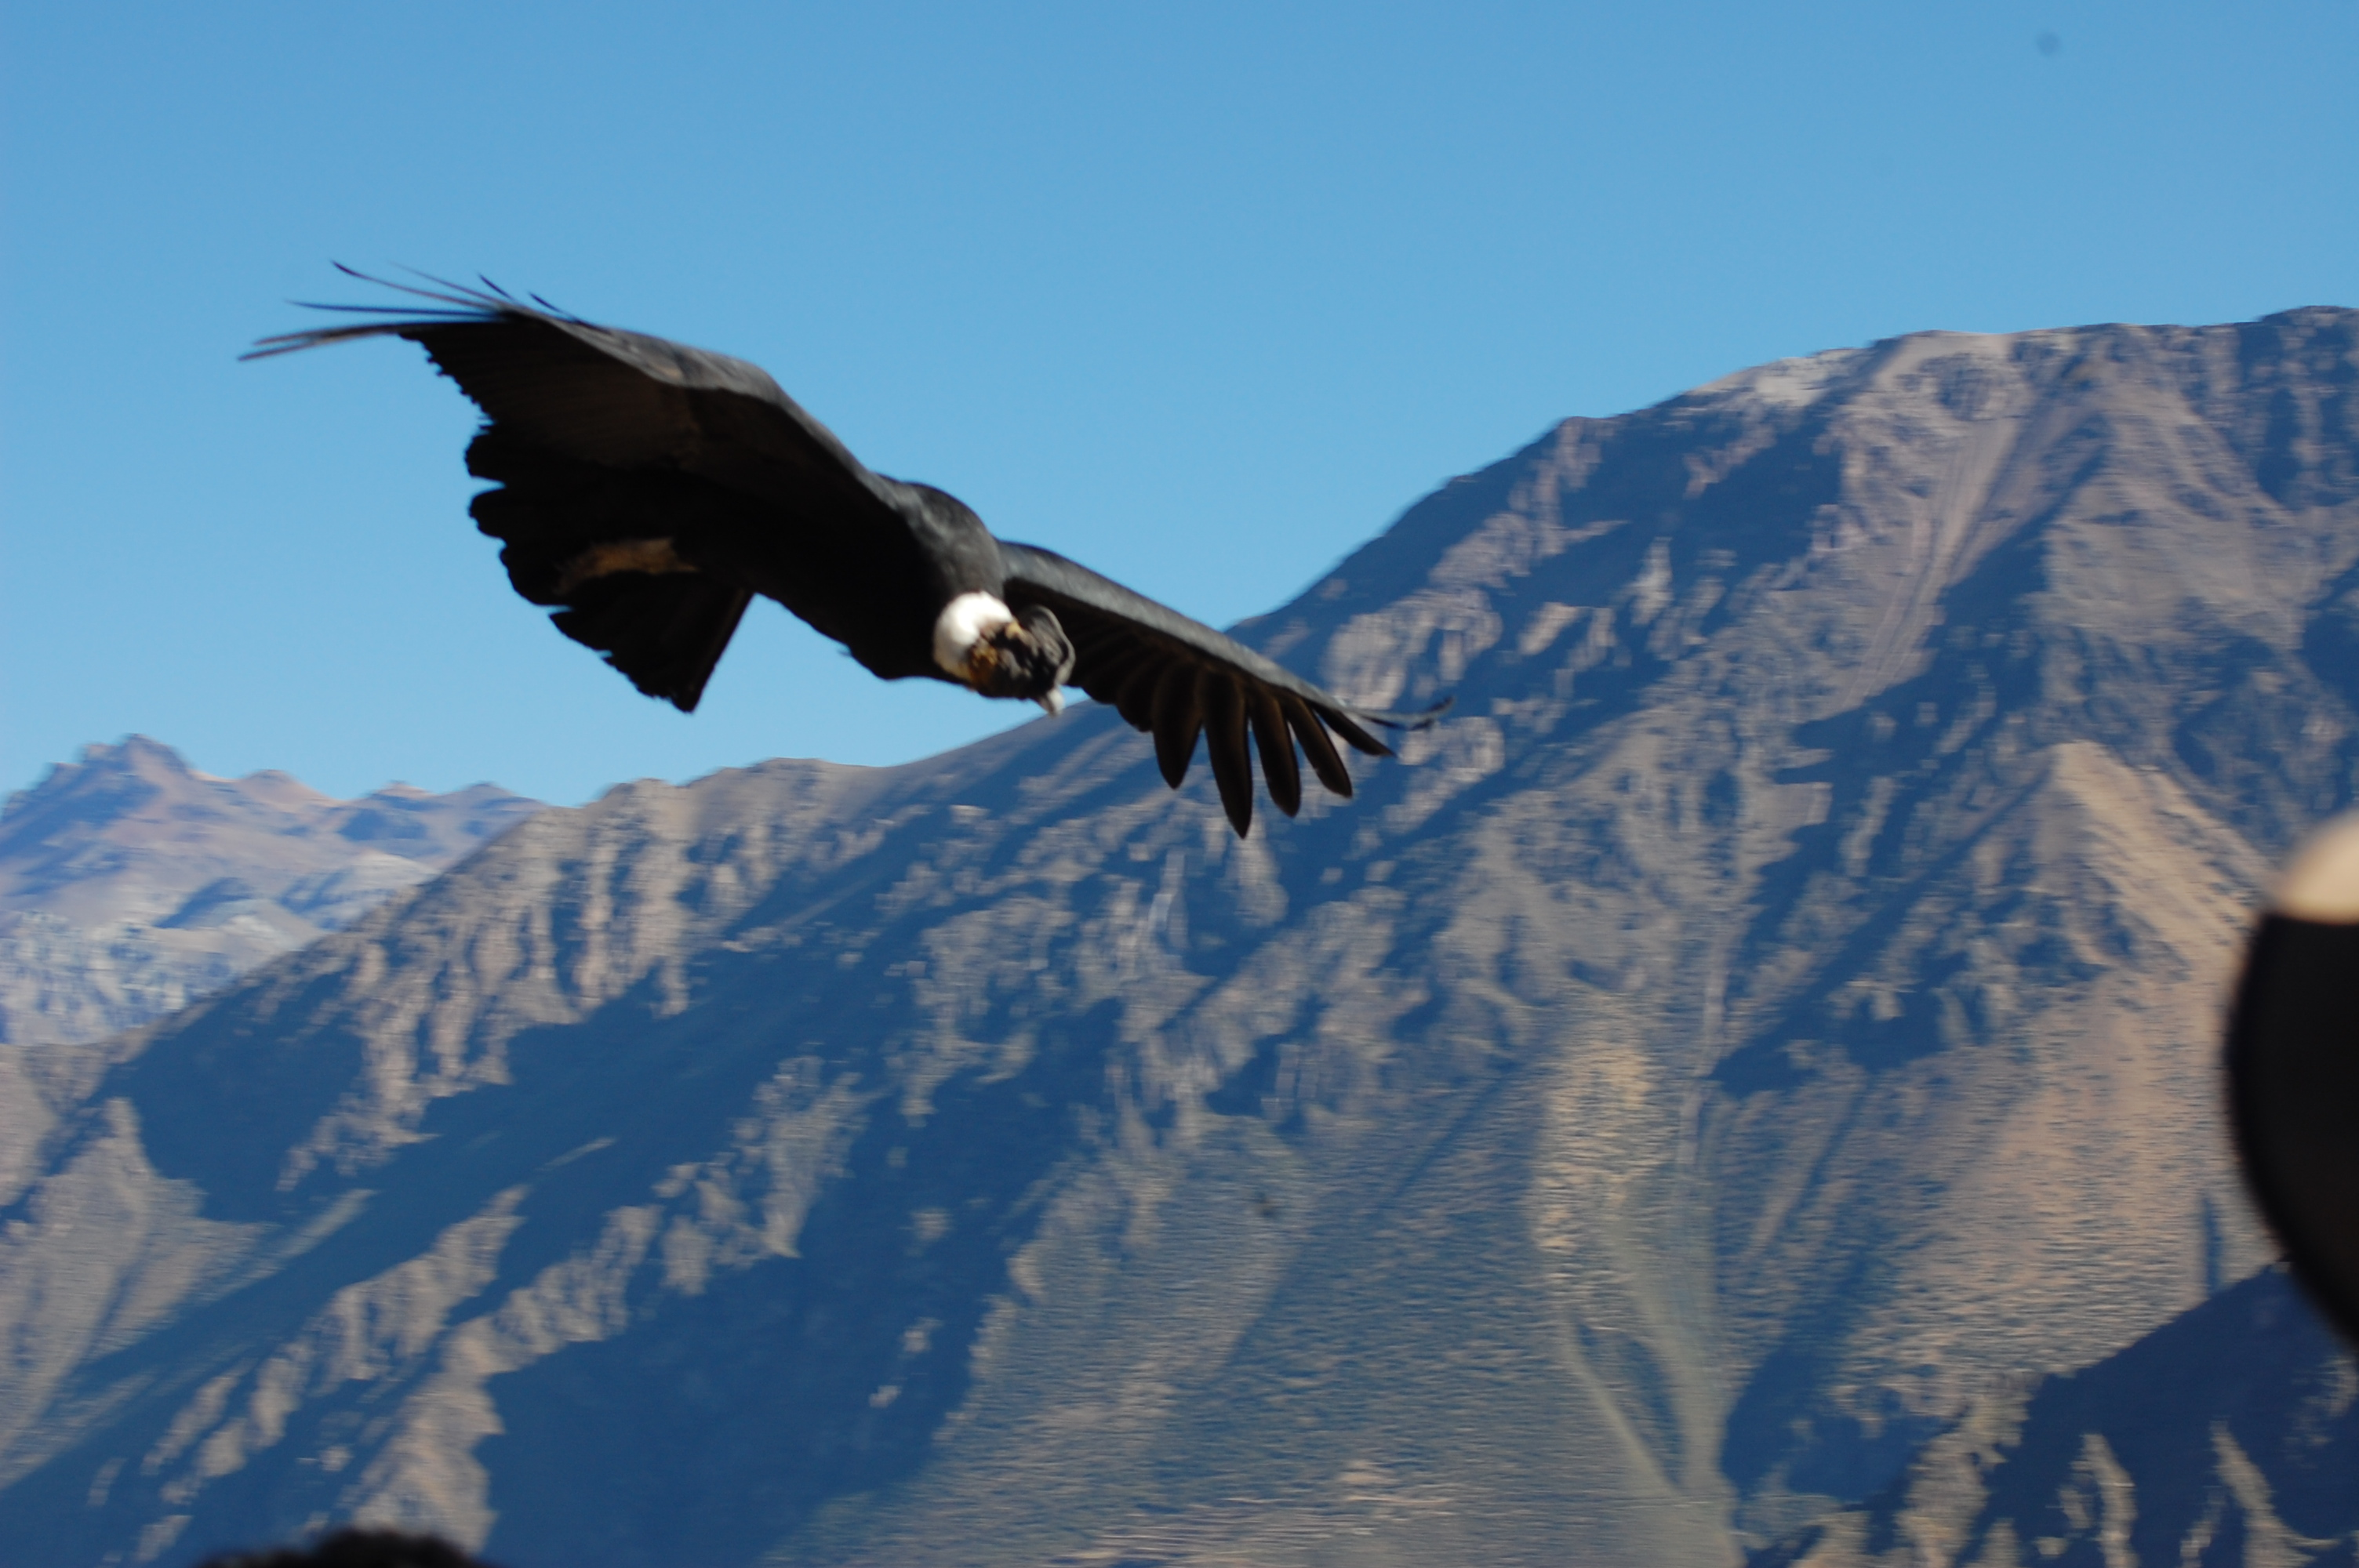 Great shot of condor with white neck and knobby head